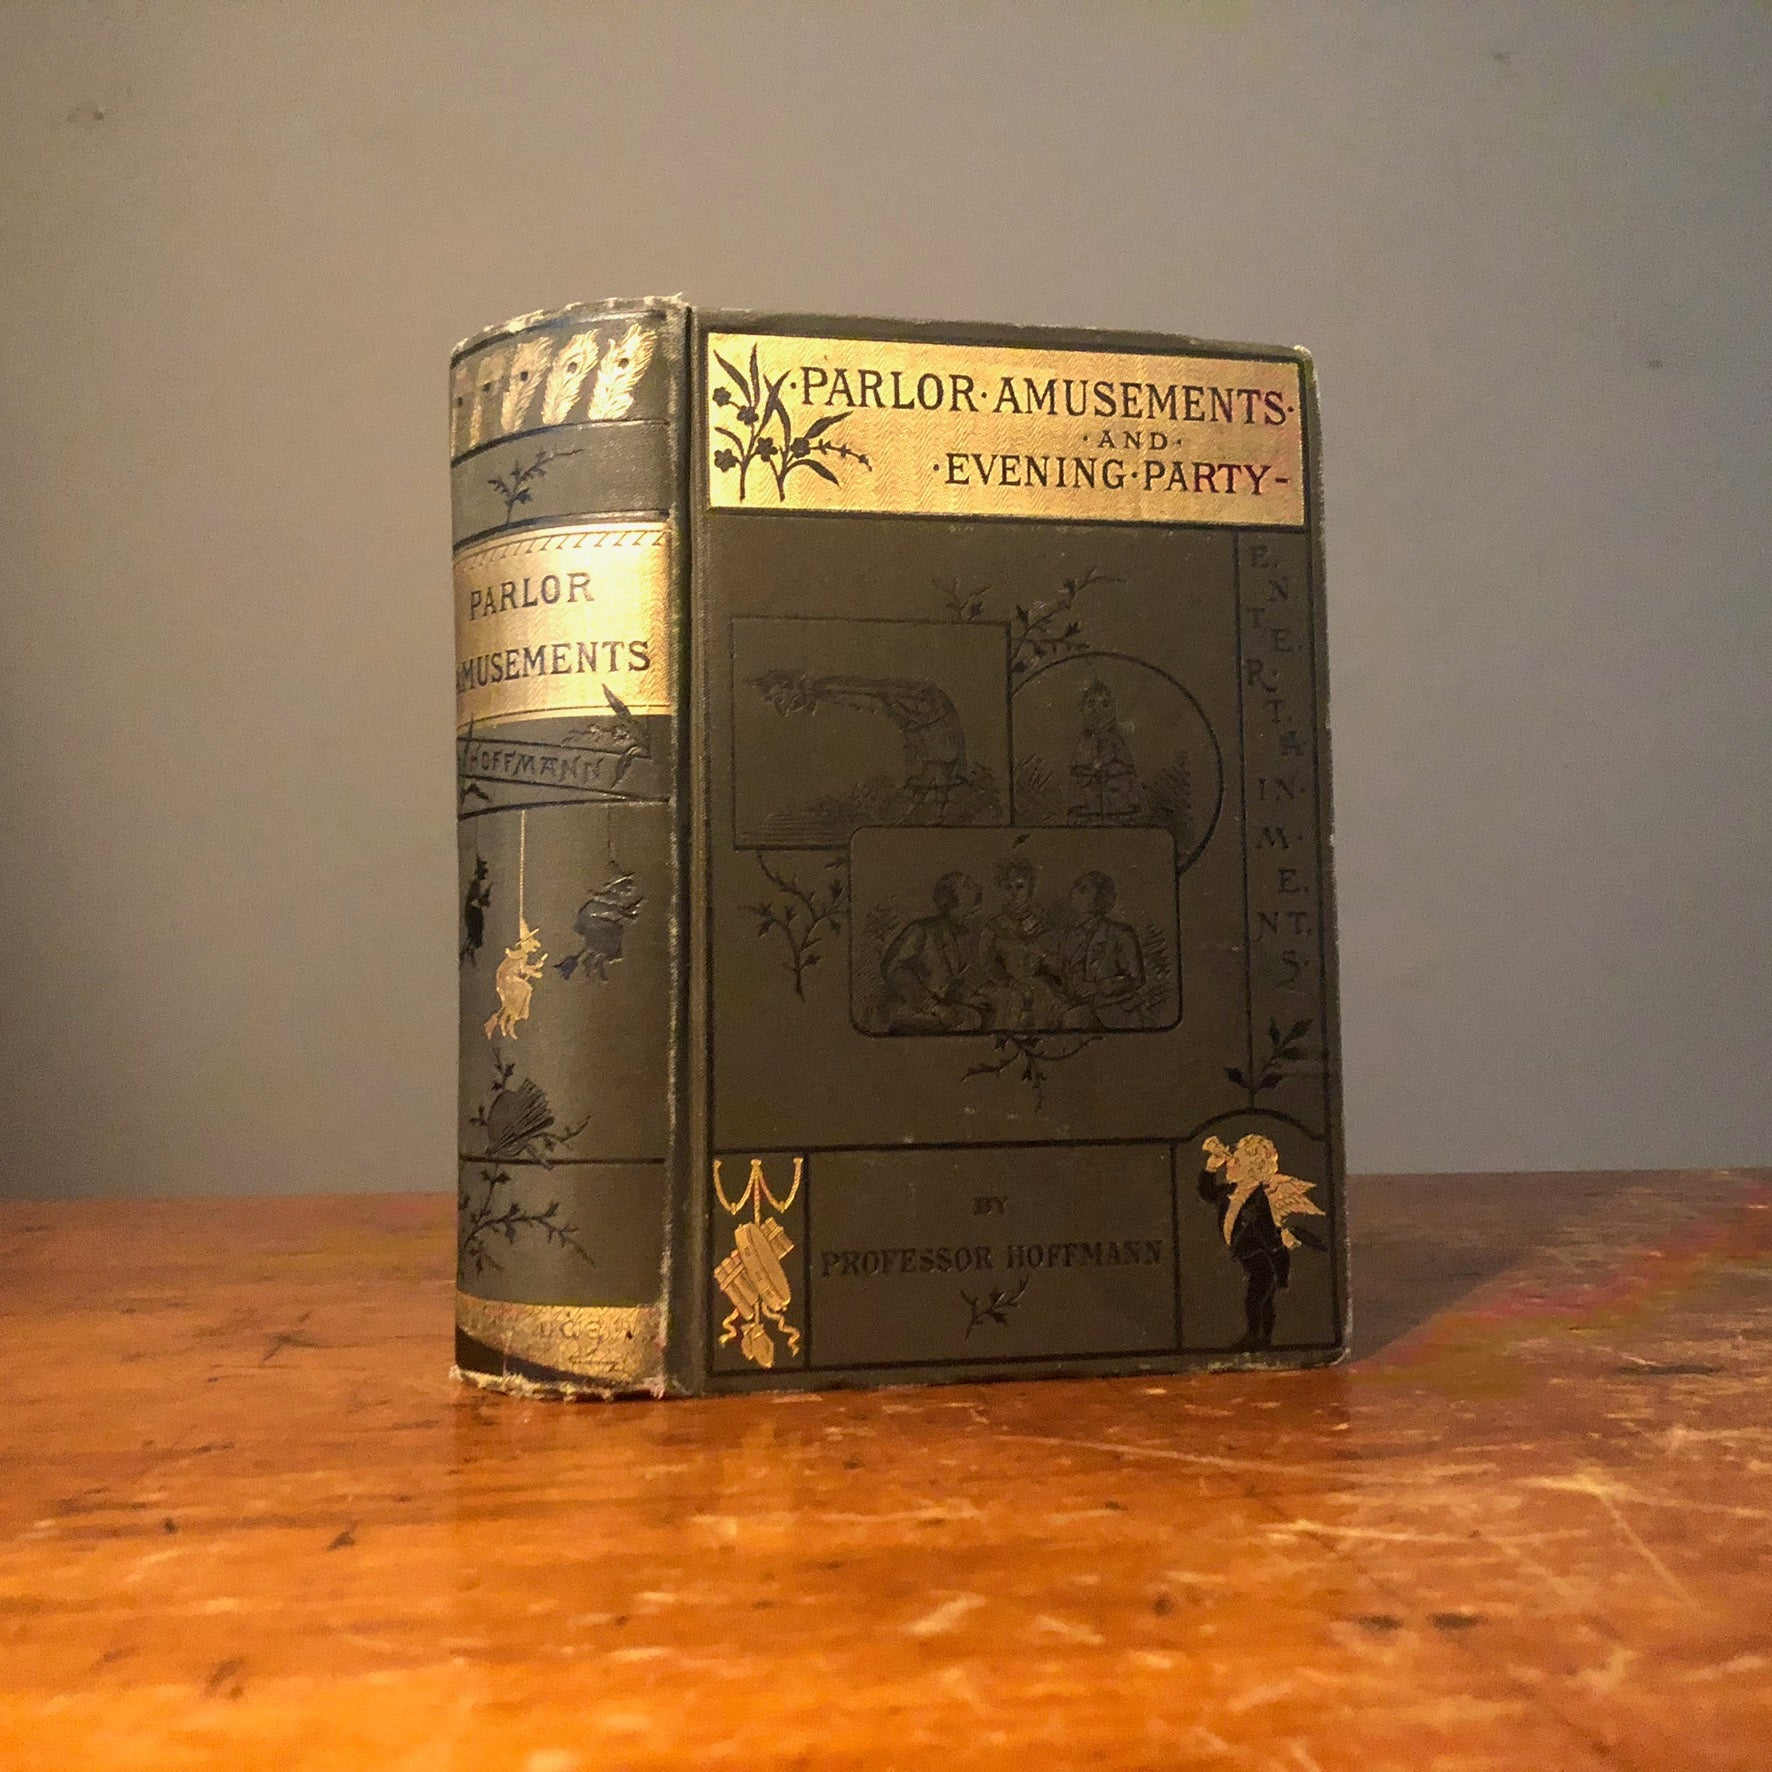 Rare Parlor Amusements and Evening Party Entertainments Book by Professor Hoffman.- Late 1800s  -Weird Games - Bizarre 19th Century Fun